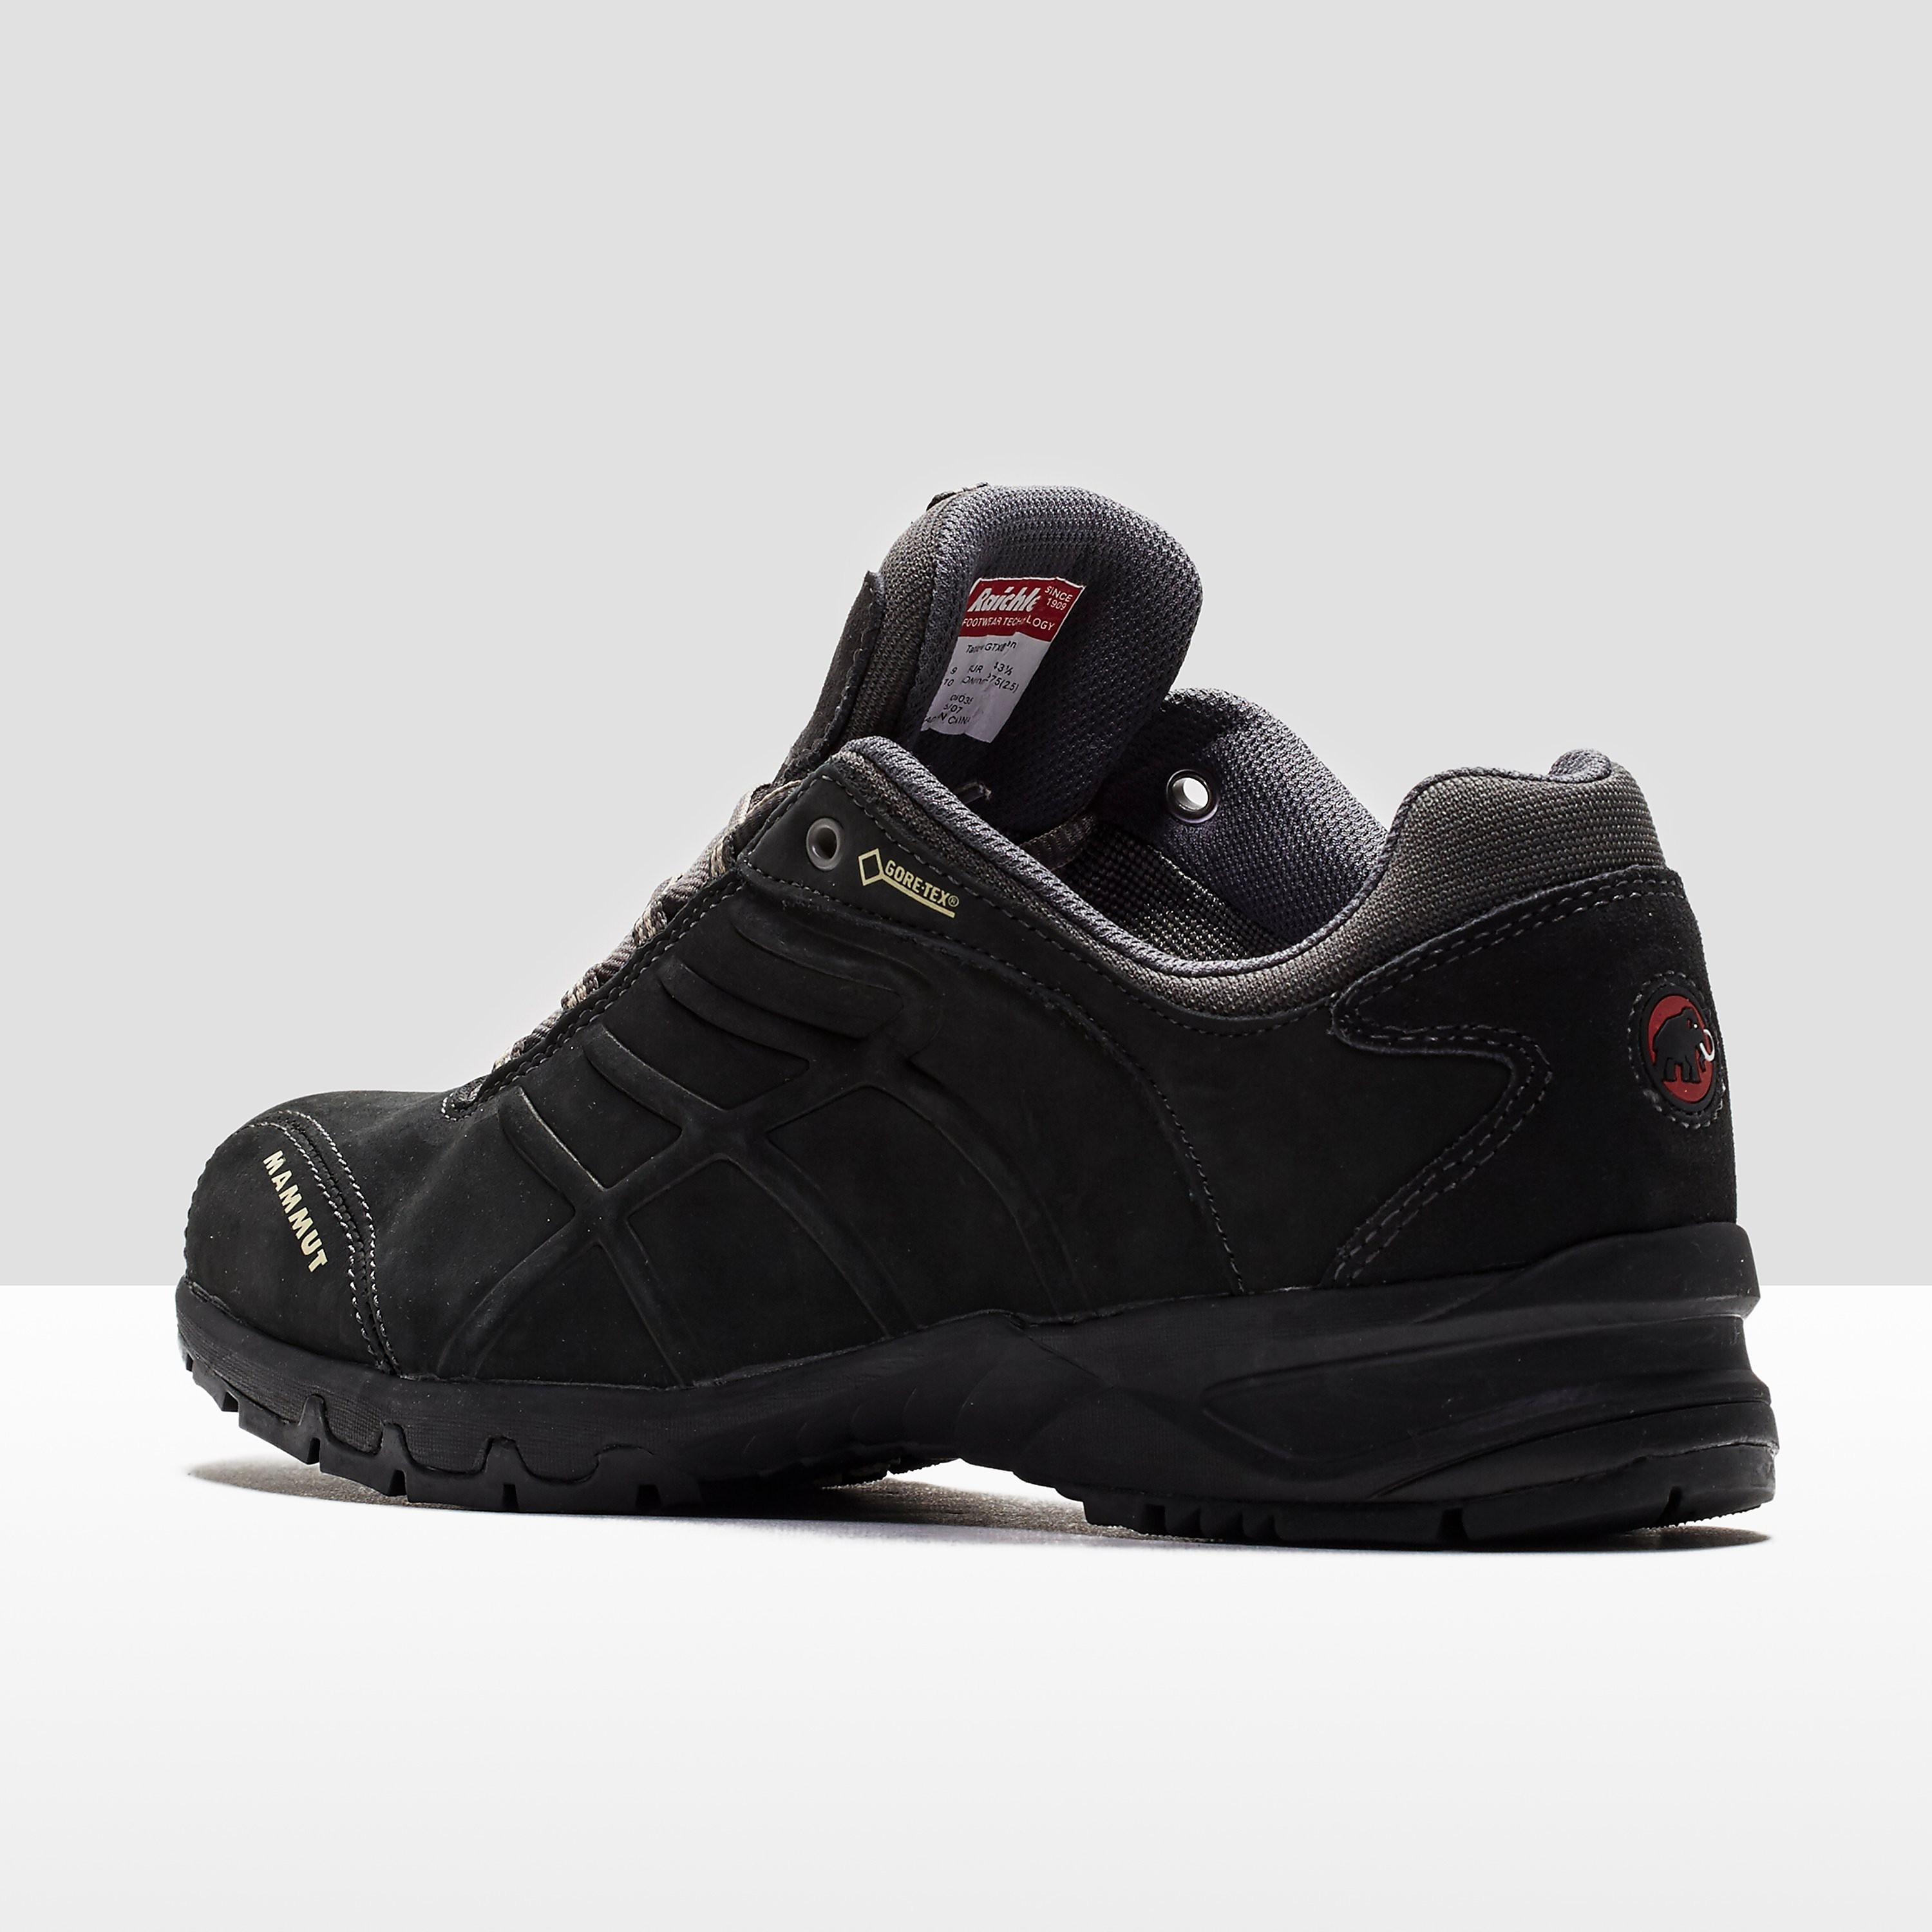 Mammut Tatlow Hiking Shoes